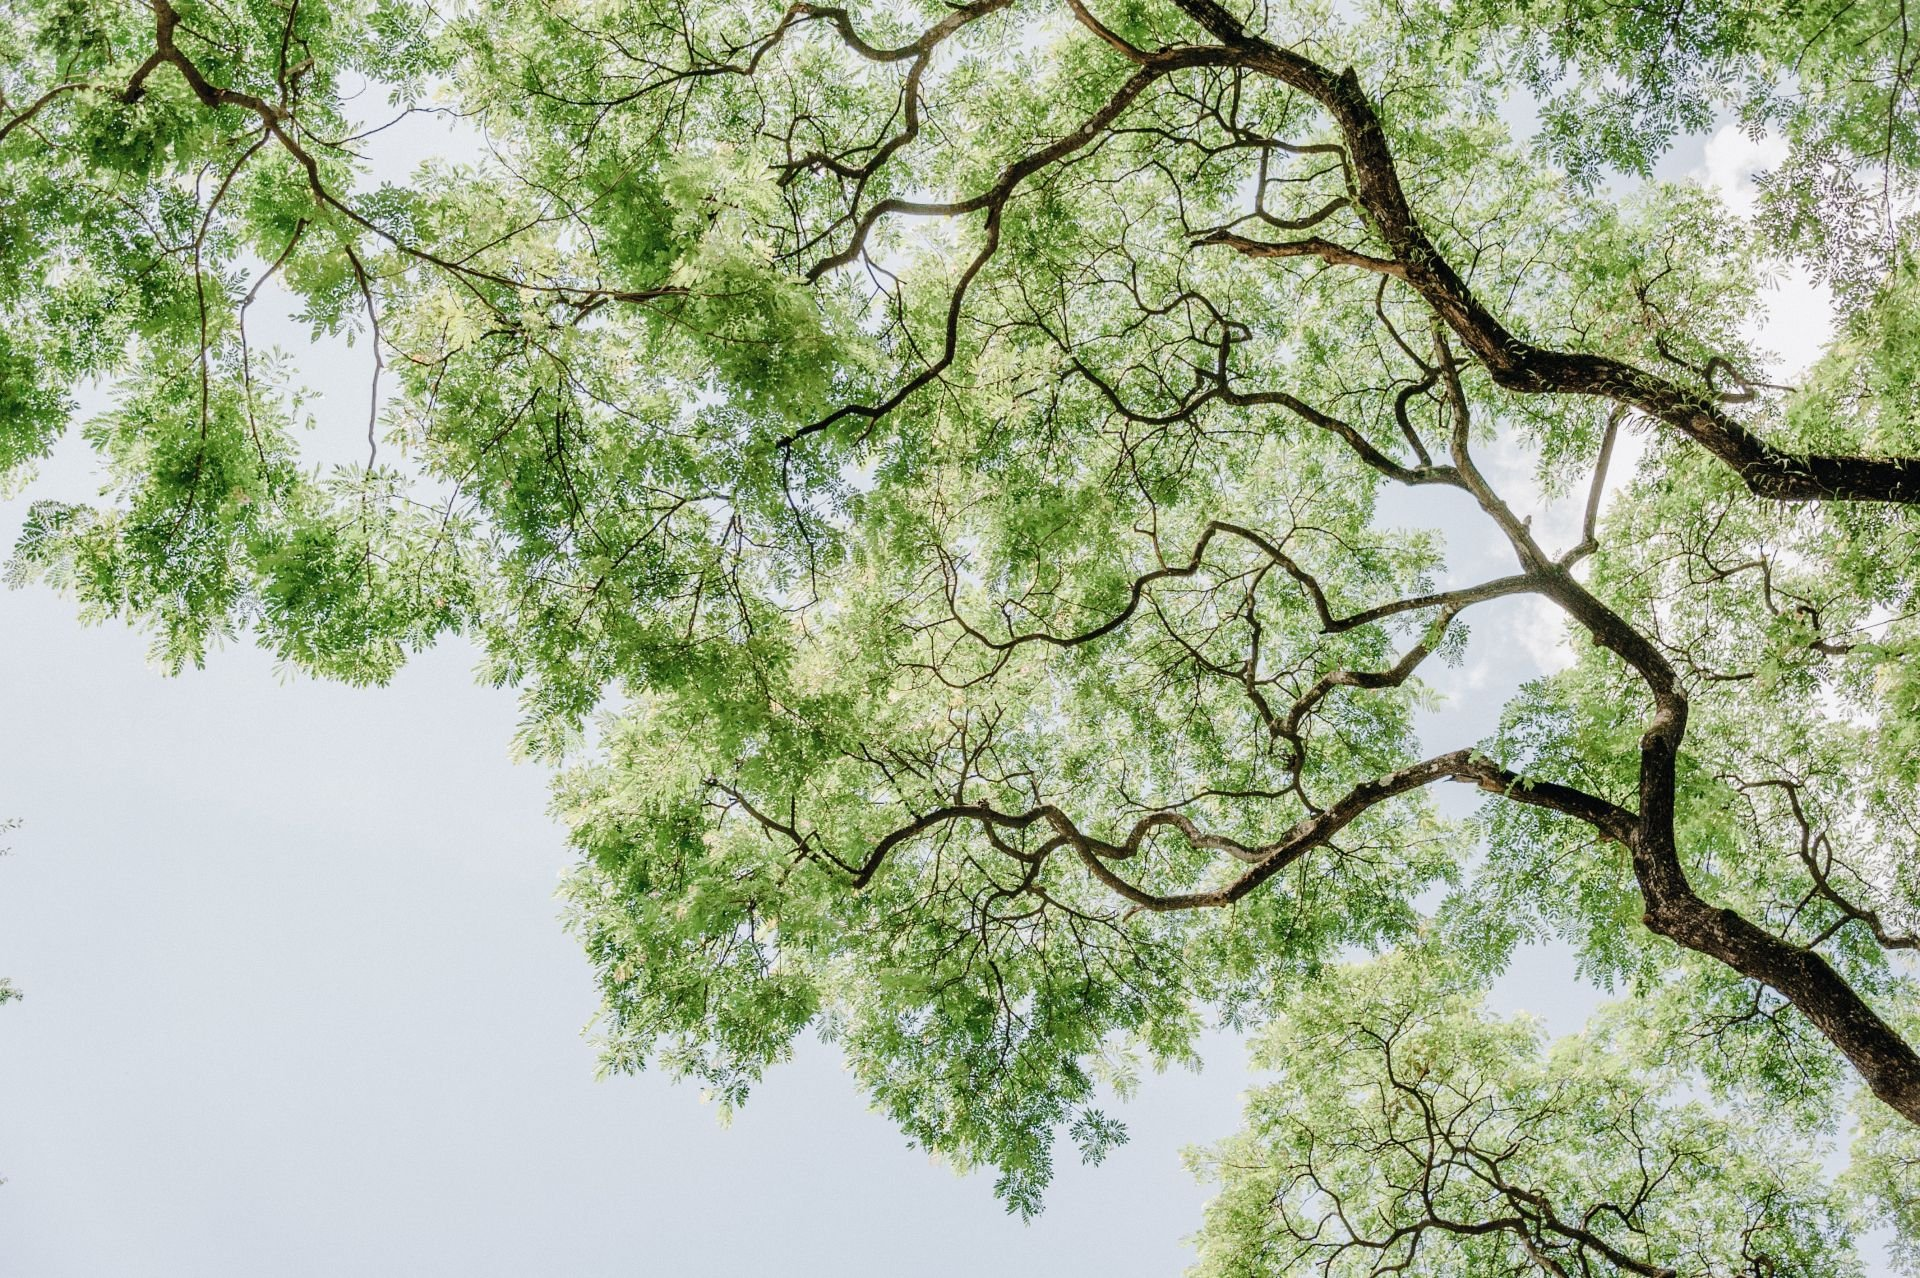 Green tree branches against sky